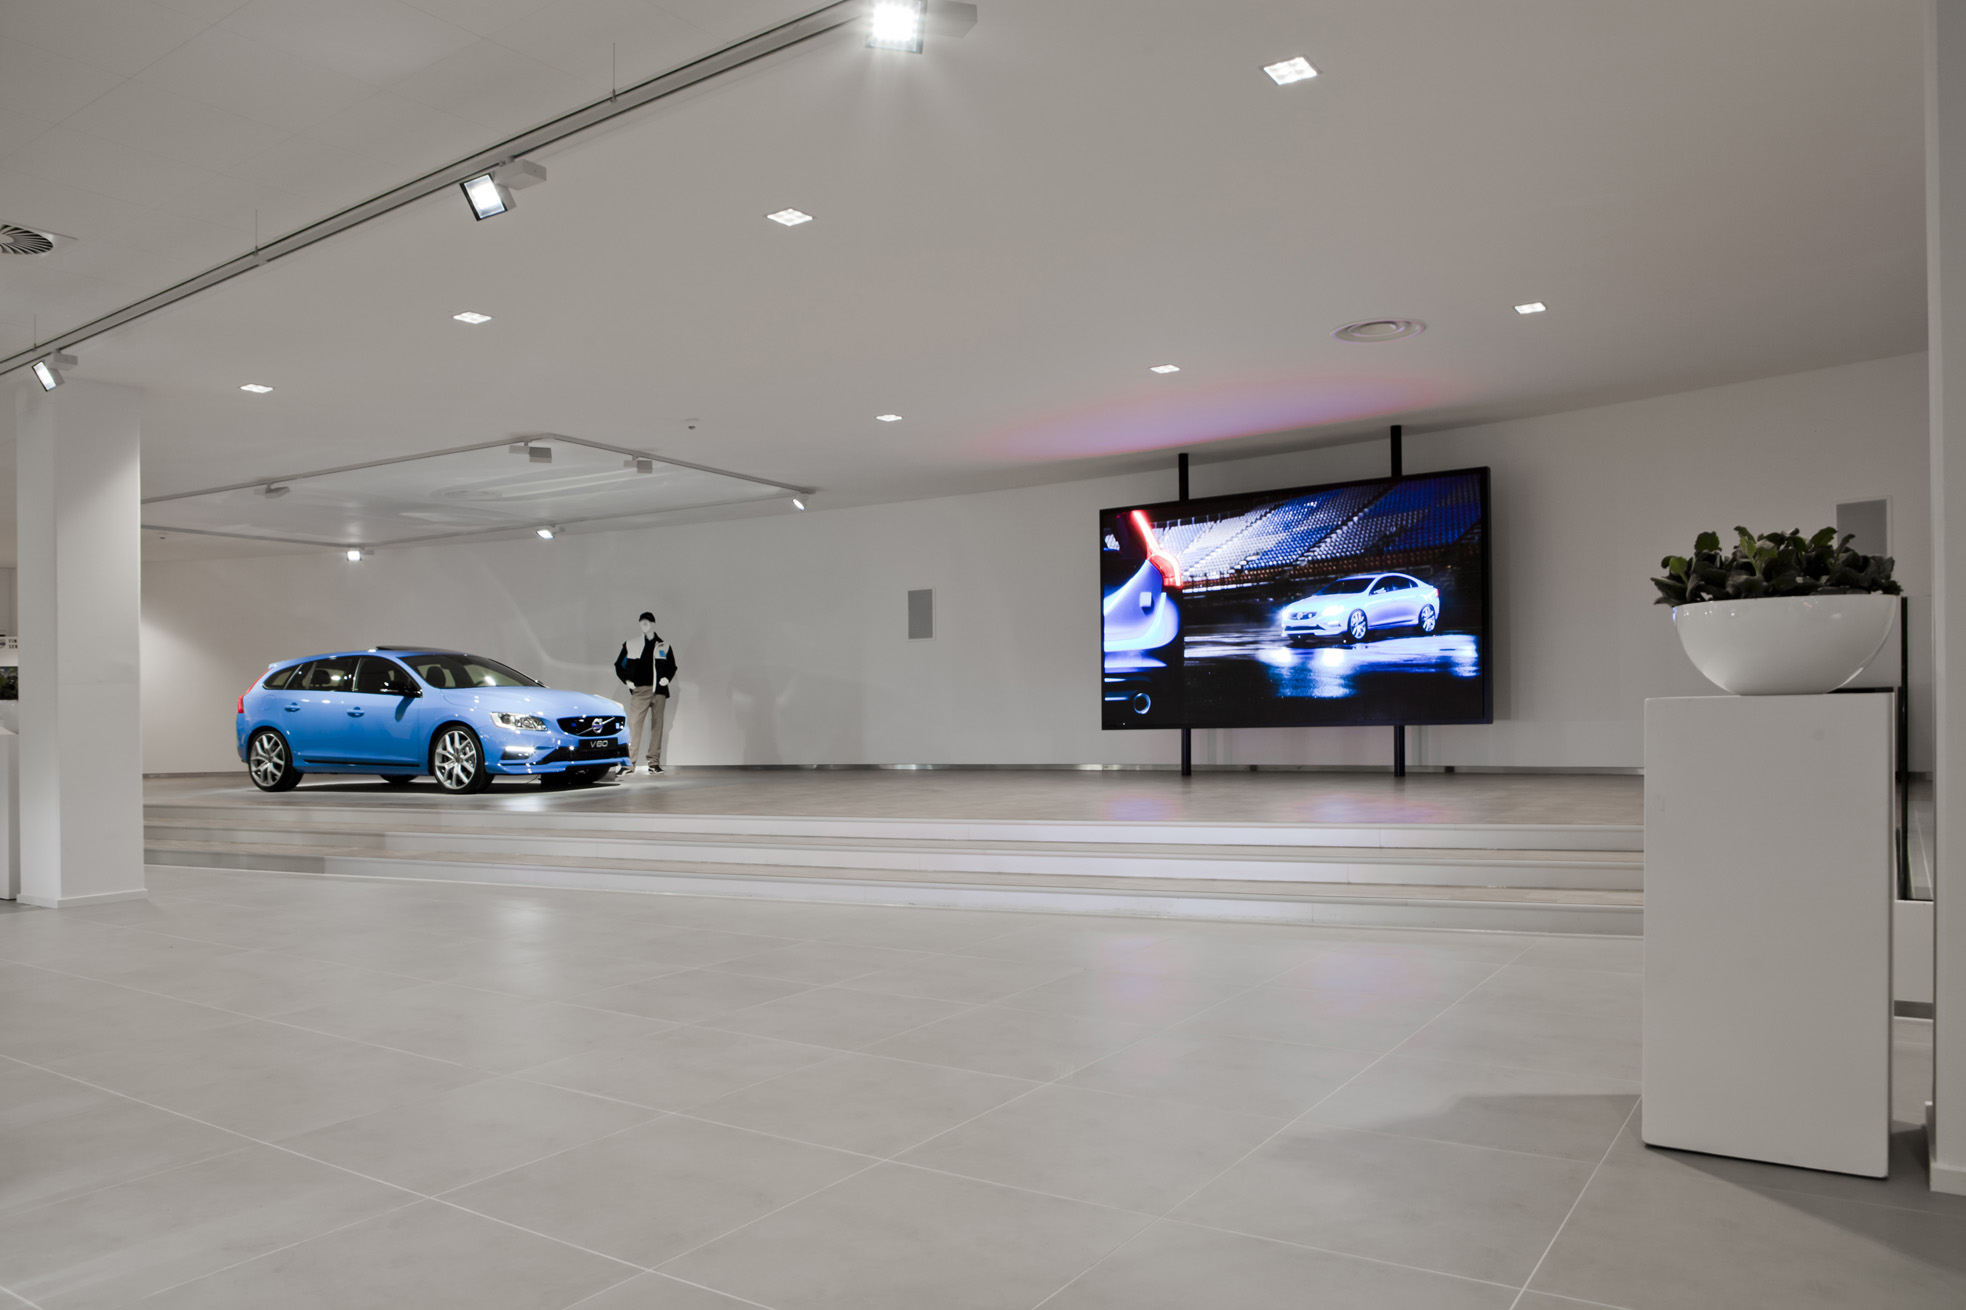 Volvo Beesd showroom LED-scherm binnen showroom